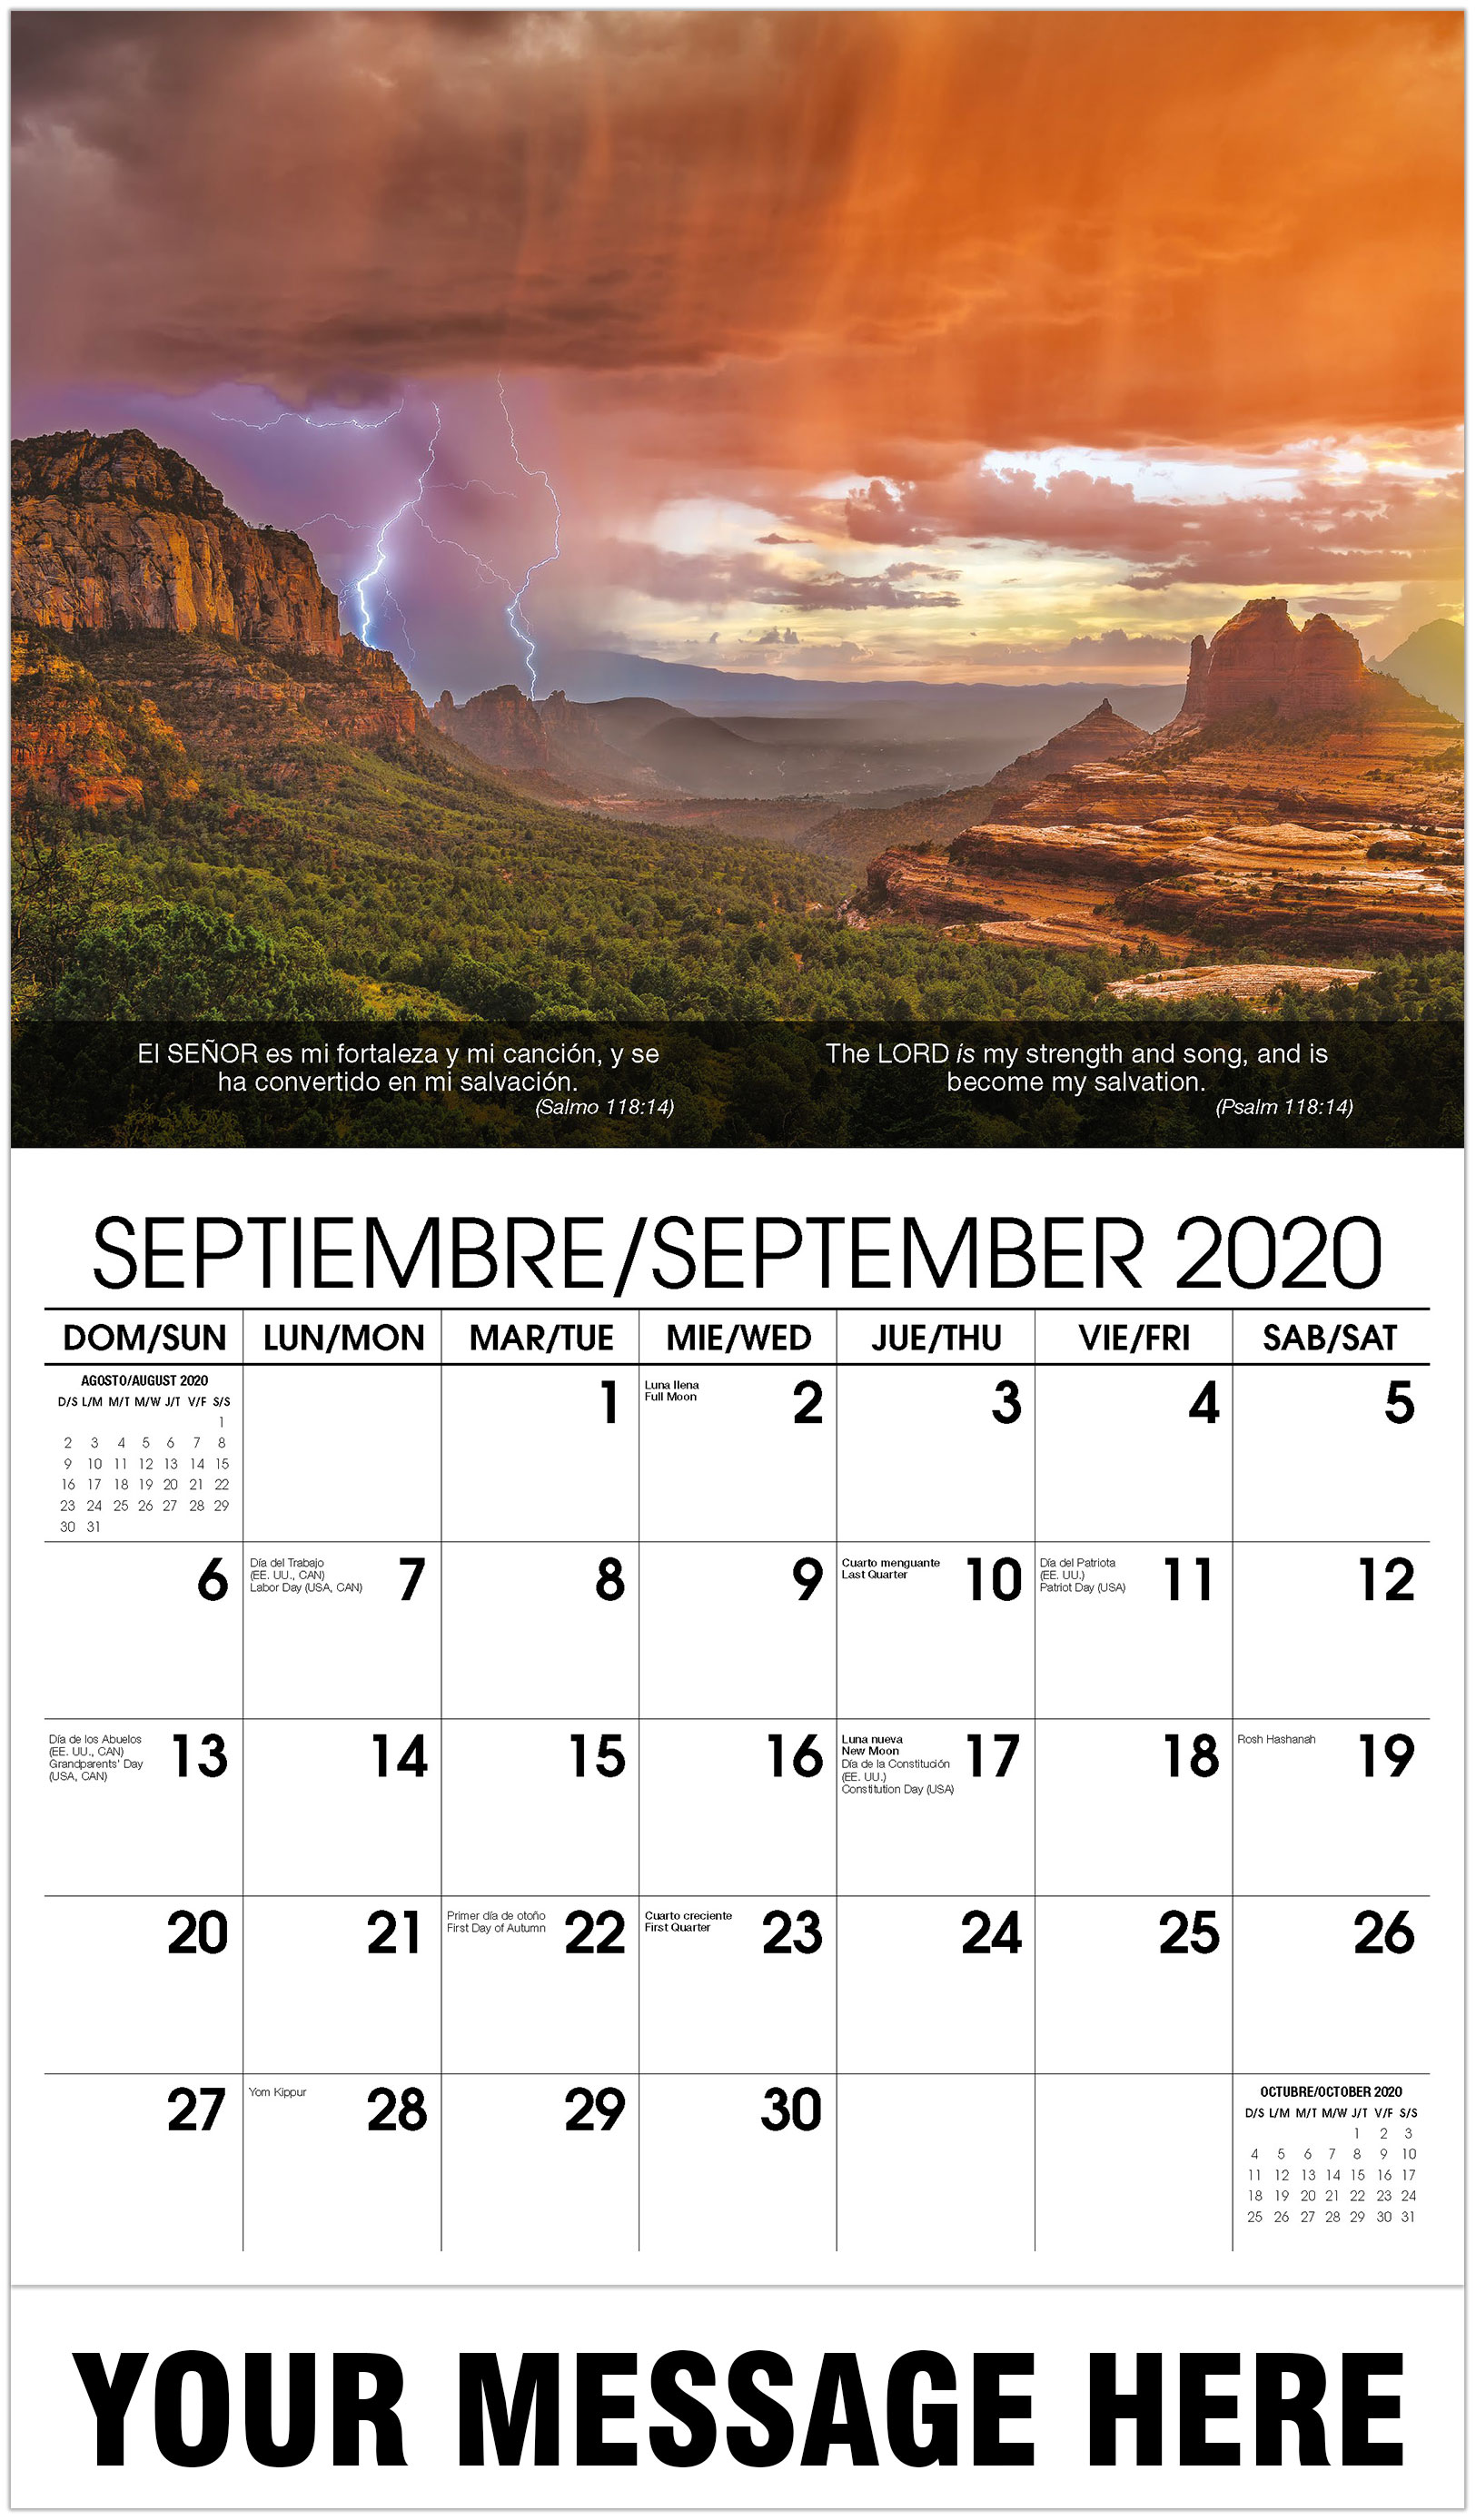 2020 Bilingual Business Advertising Calendar - Lightning In Sky - September